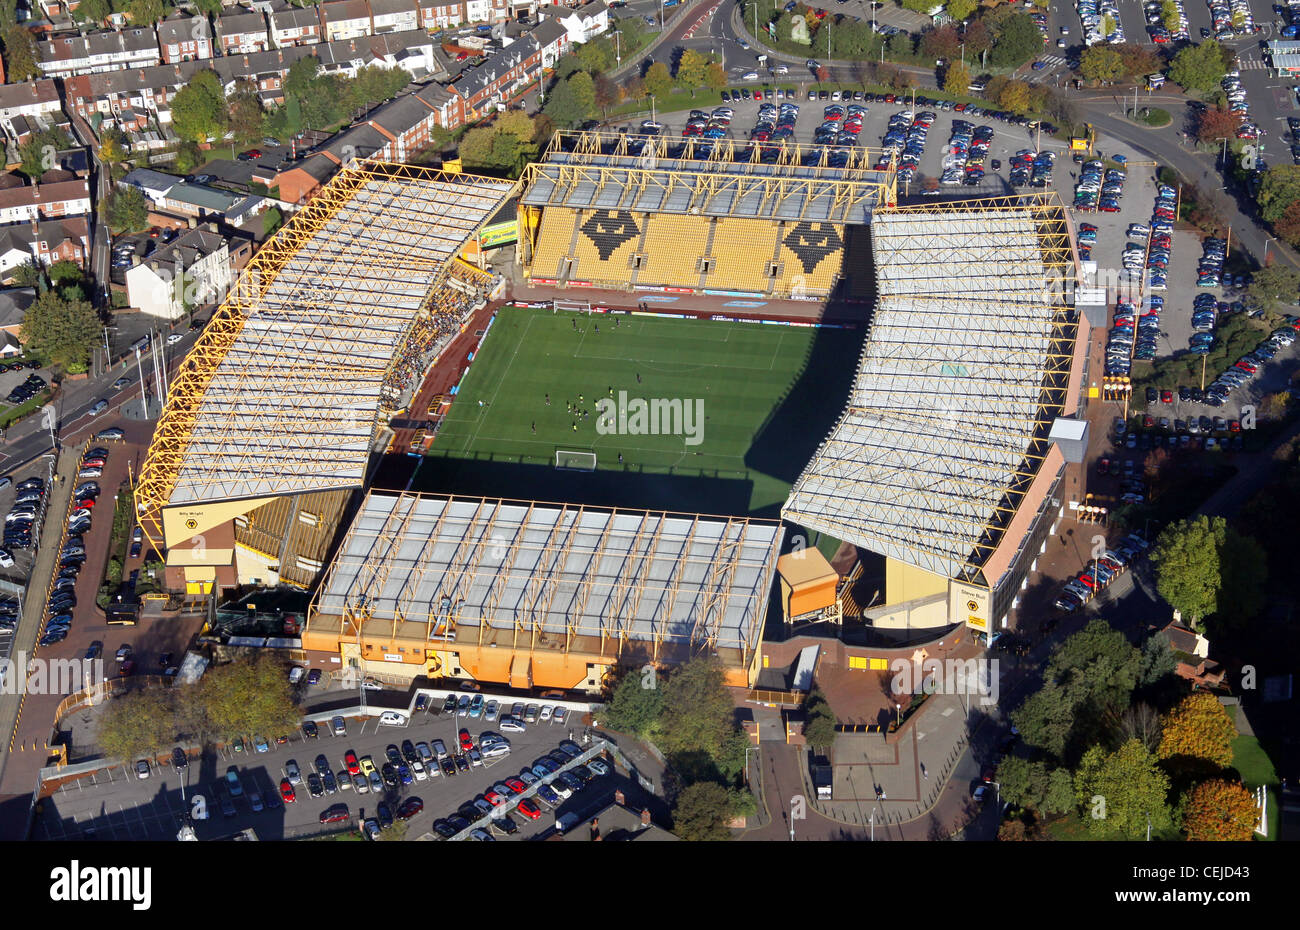 Aerial image of Wolverhampton Wanderers FC Molineux ground - Stock Image